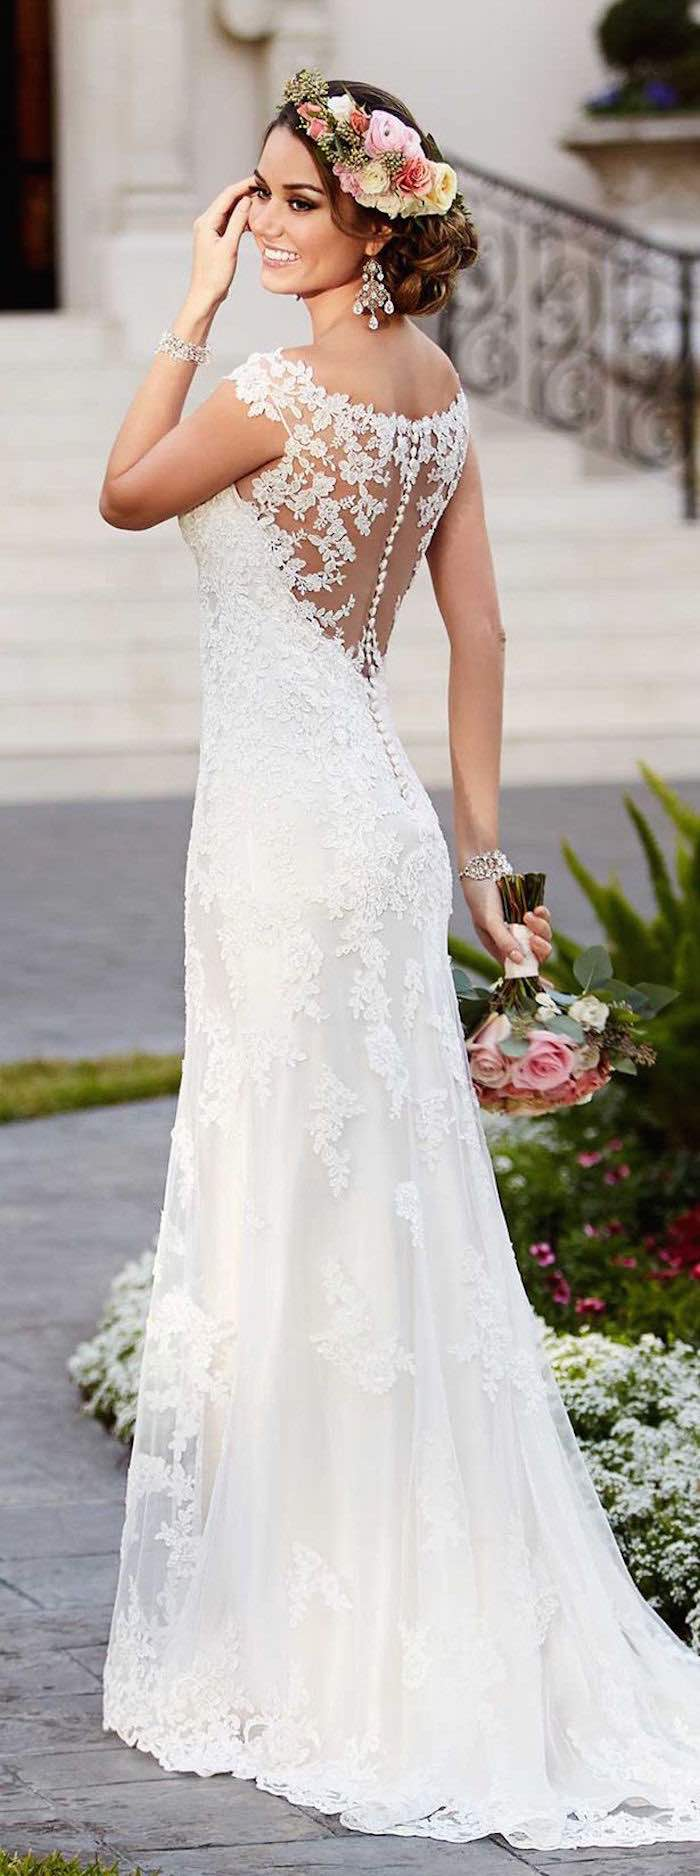 Fullsize Of Summer Dresses For Weddings